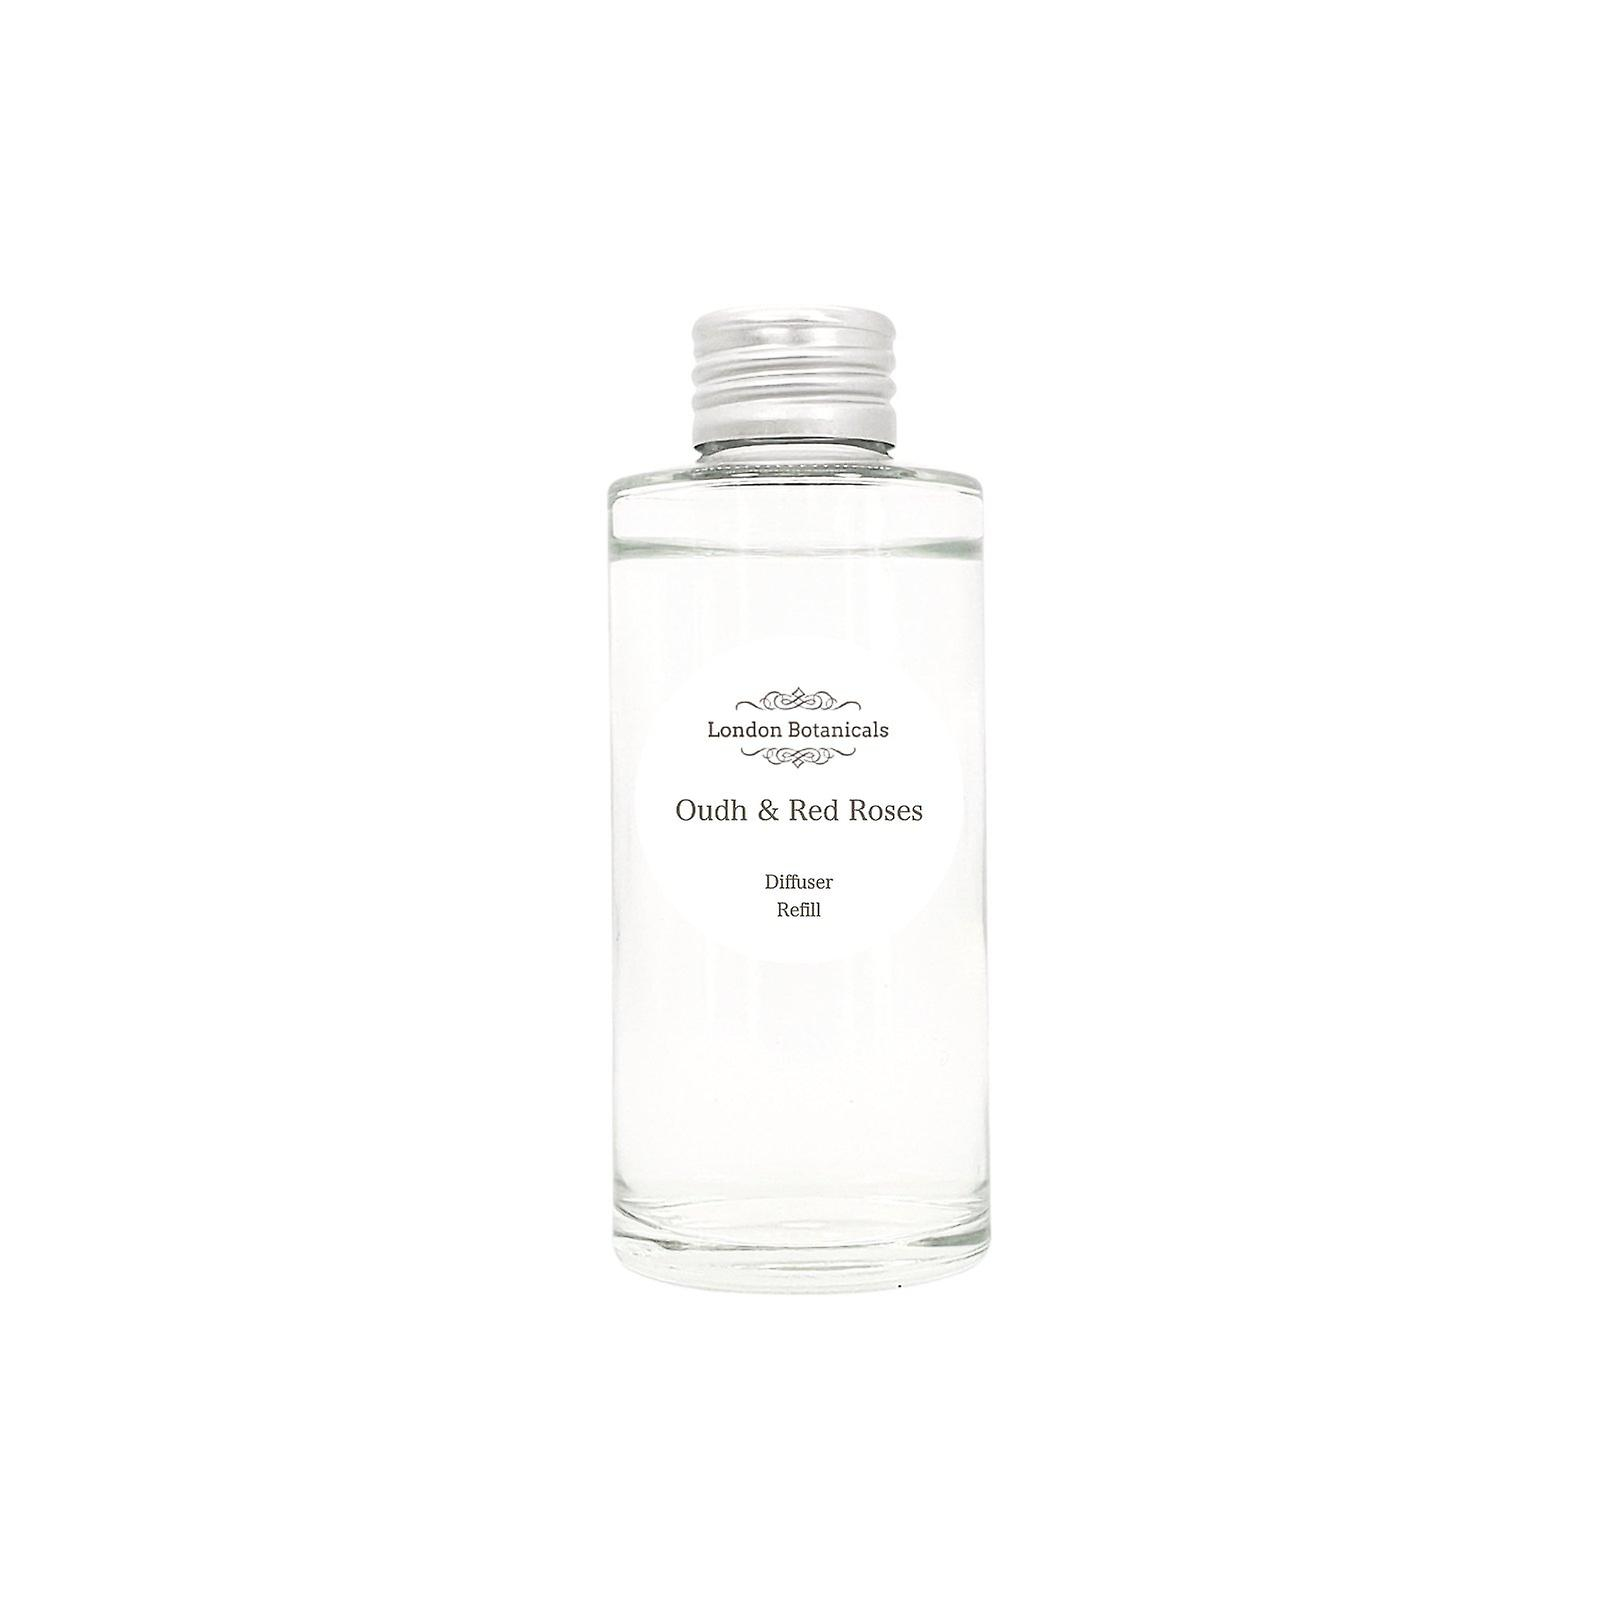 Oudh & red roses 100ml diffuser refill